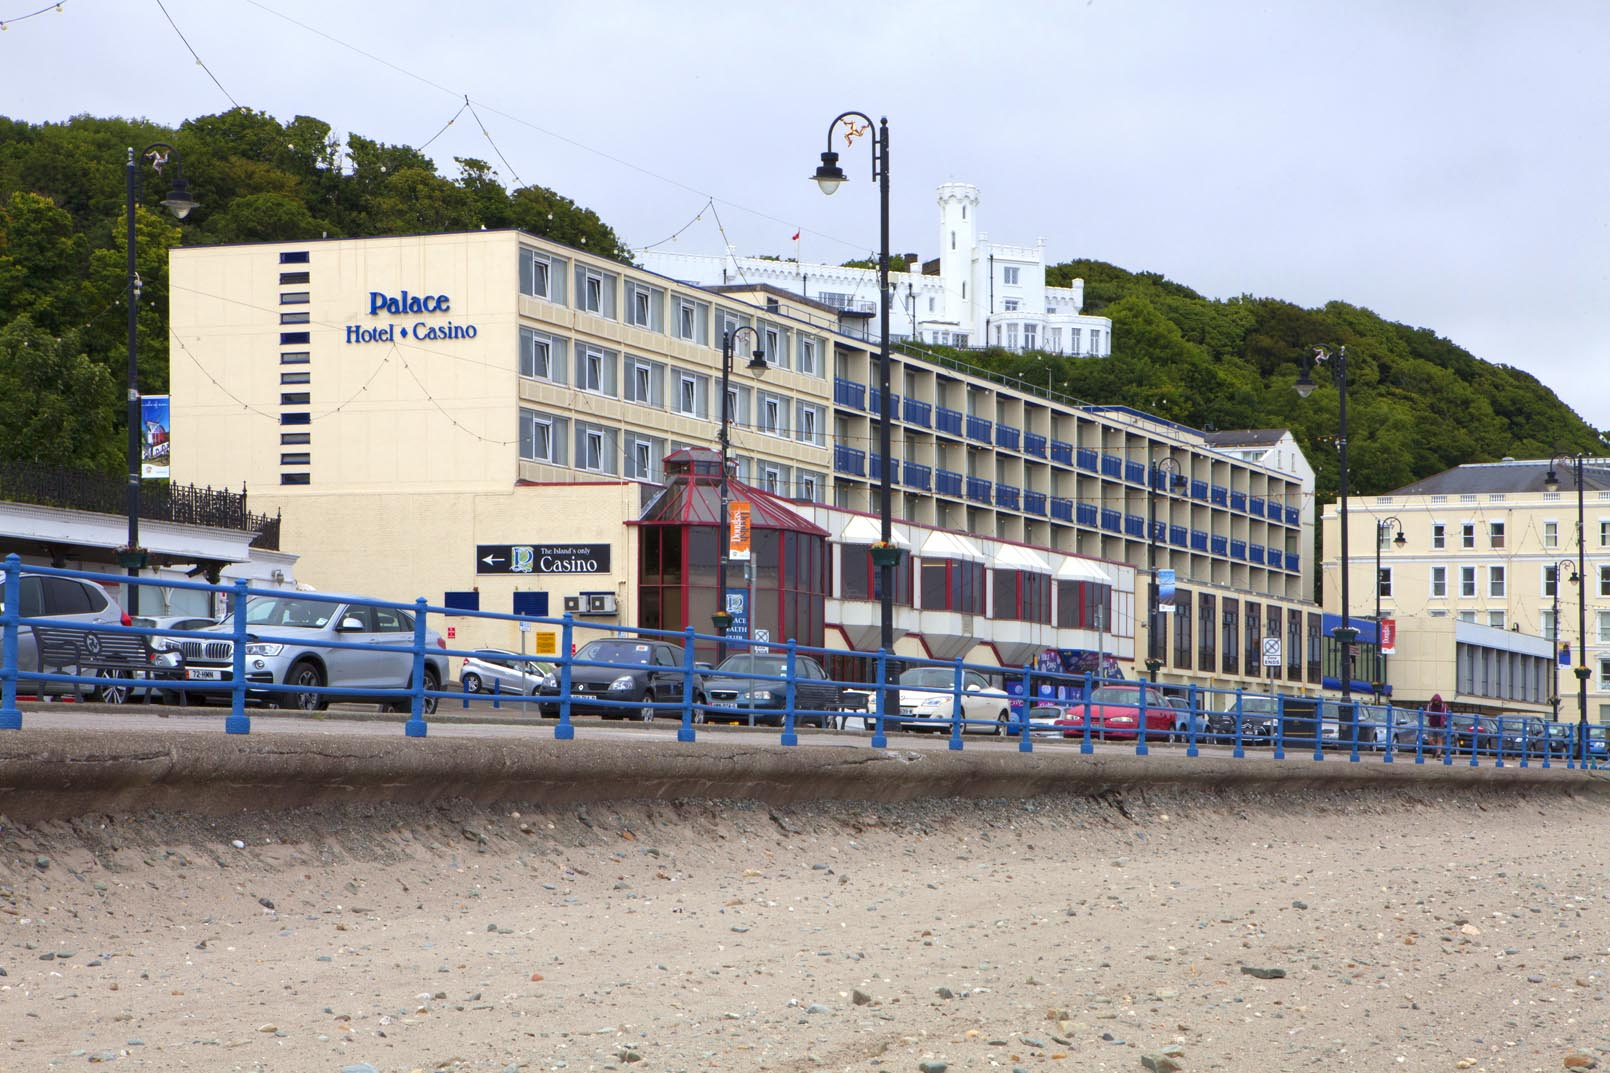 Palace Hotel and Casino - Douglas - Isle of Man